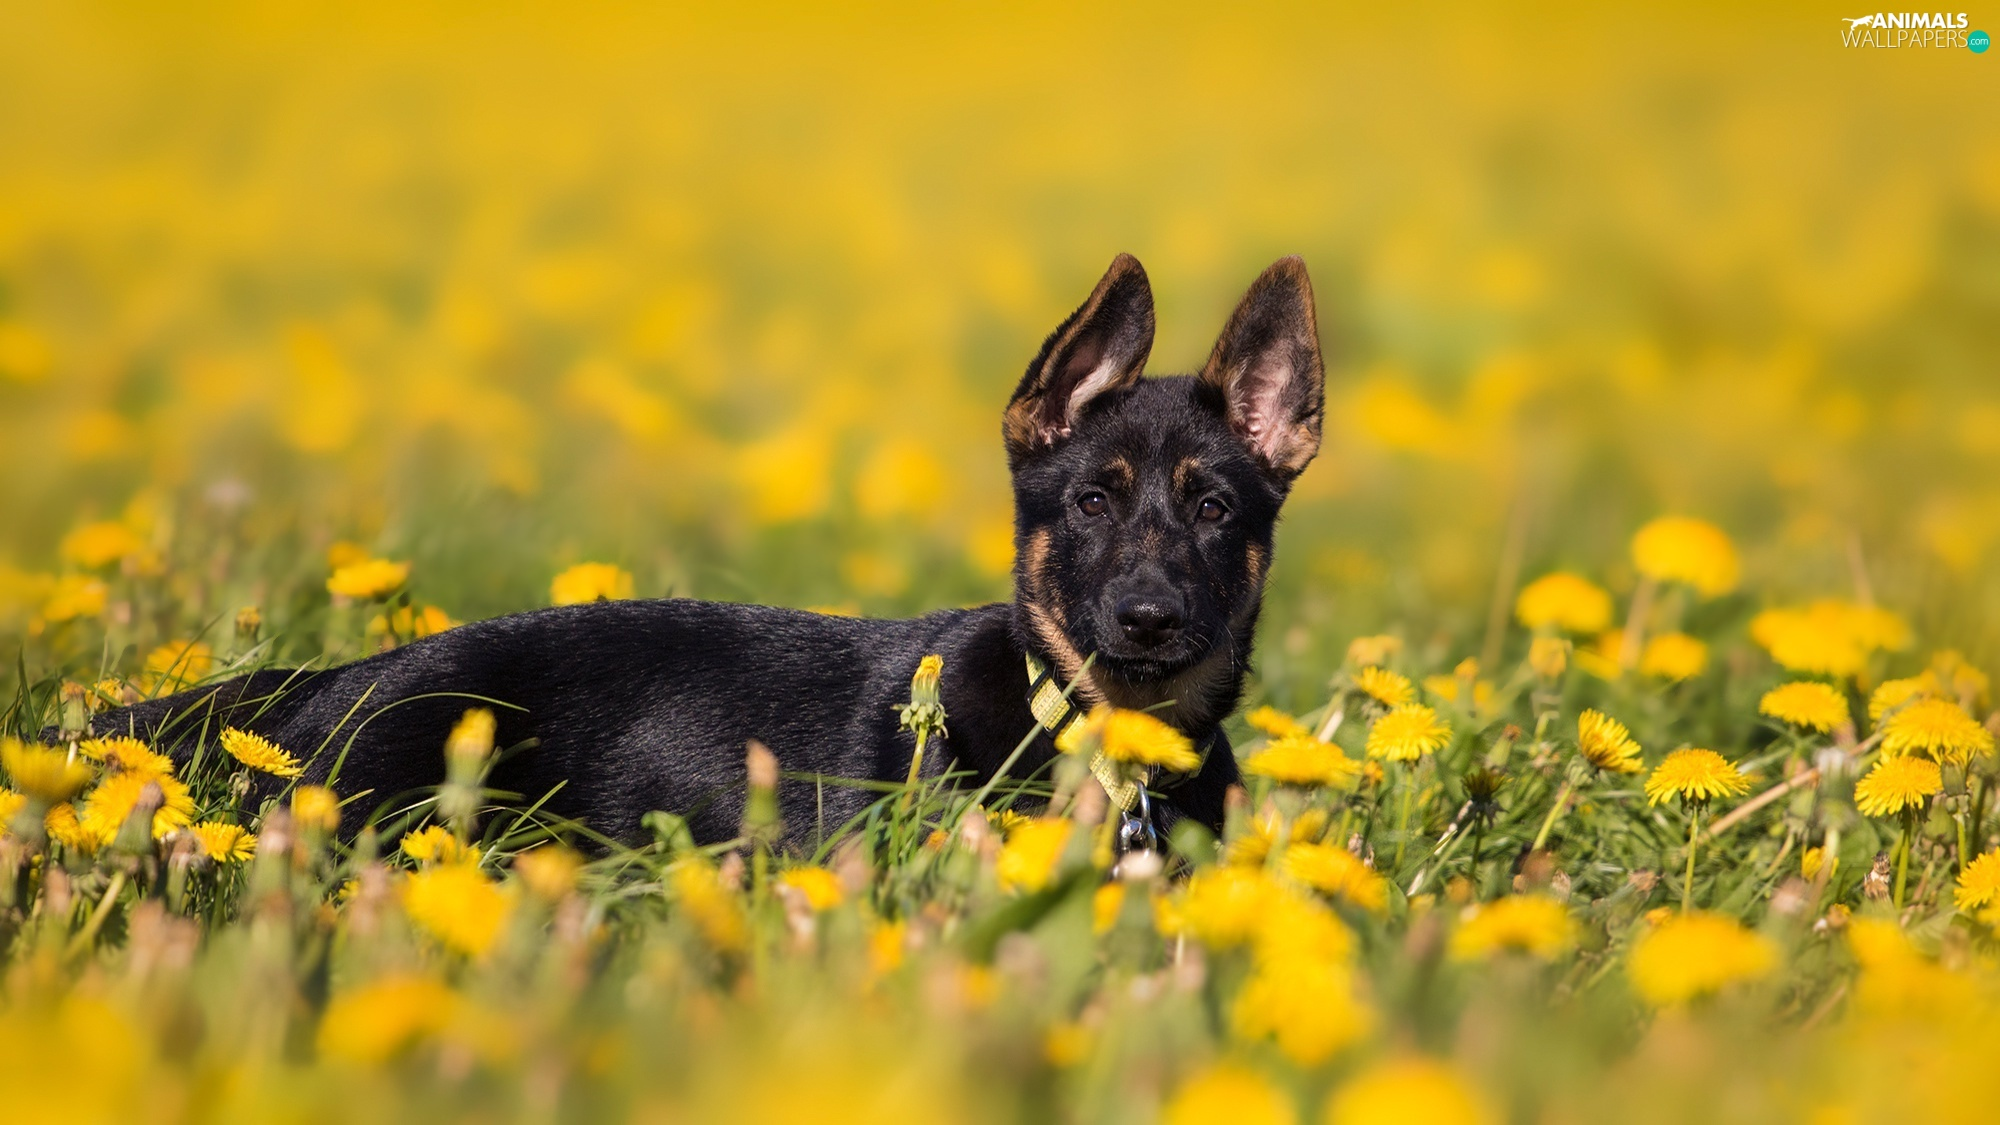 Meadow, Puppy, fuzzy, background, Common Dandelion, German Shepherd